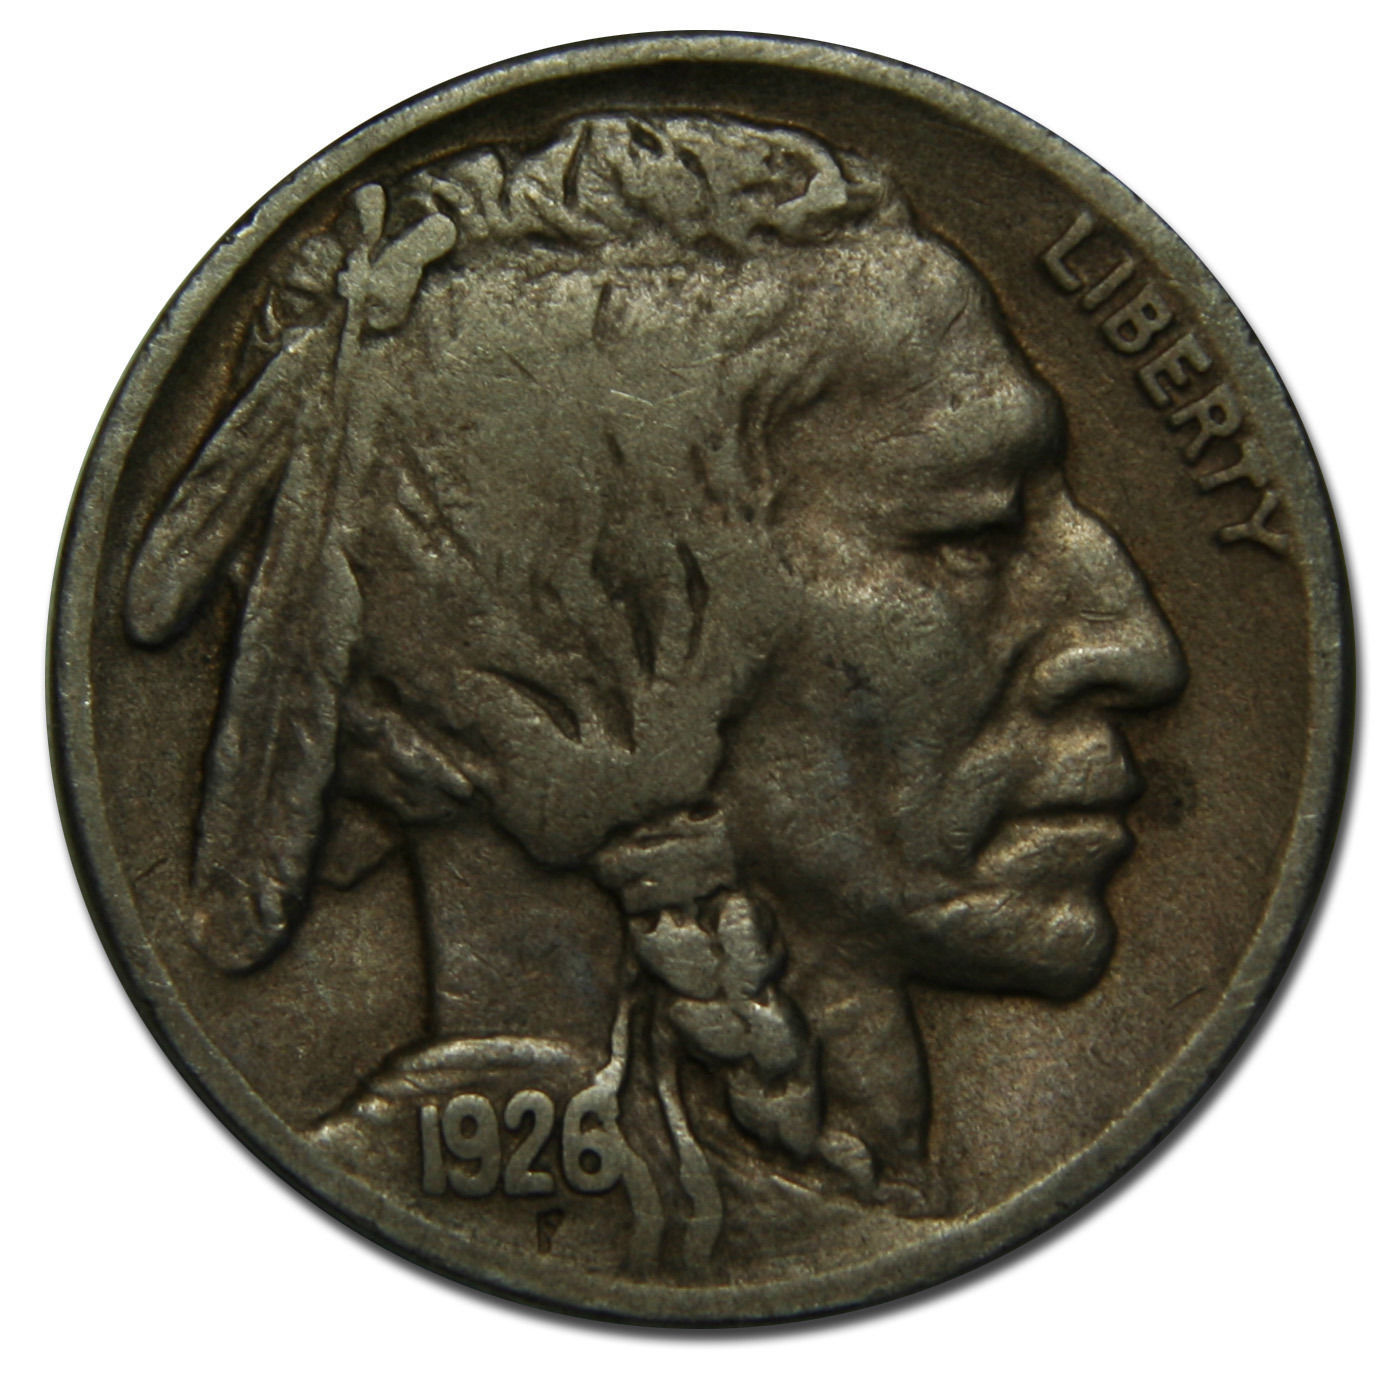 1926S Buffalo Nickel 5¢ Coin Lot # B 43